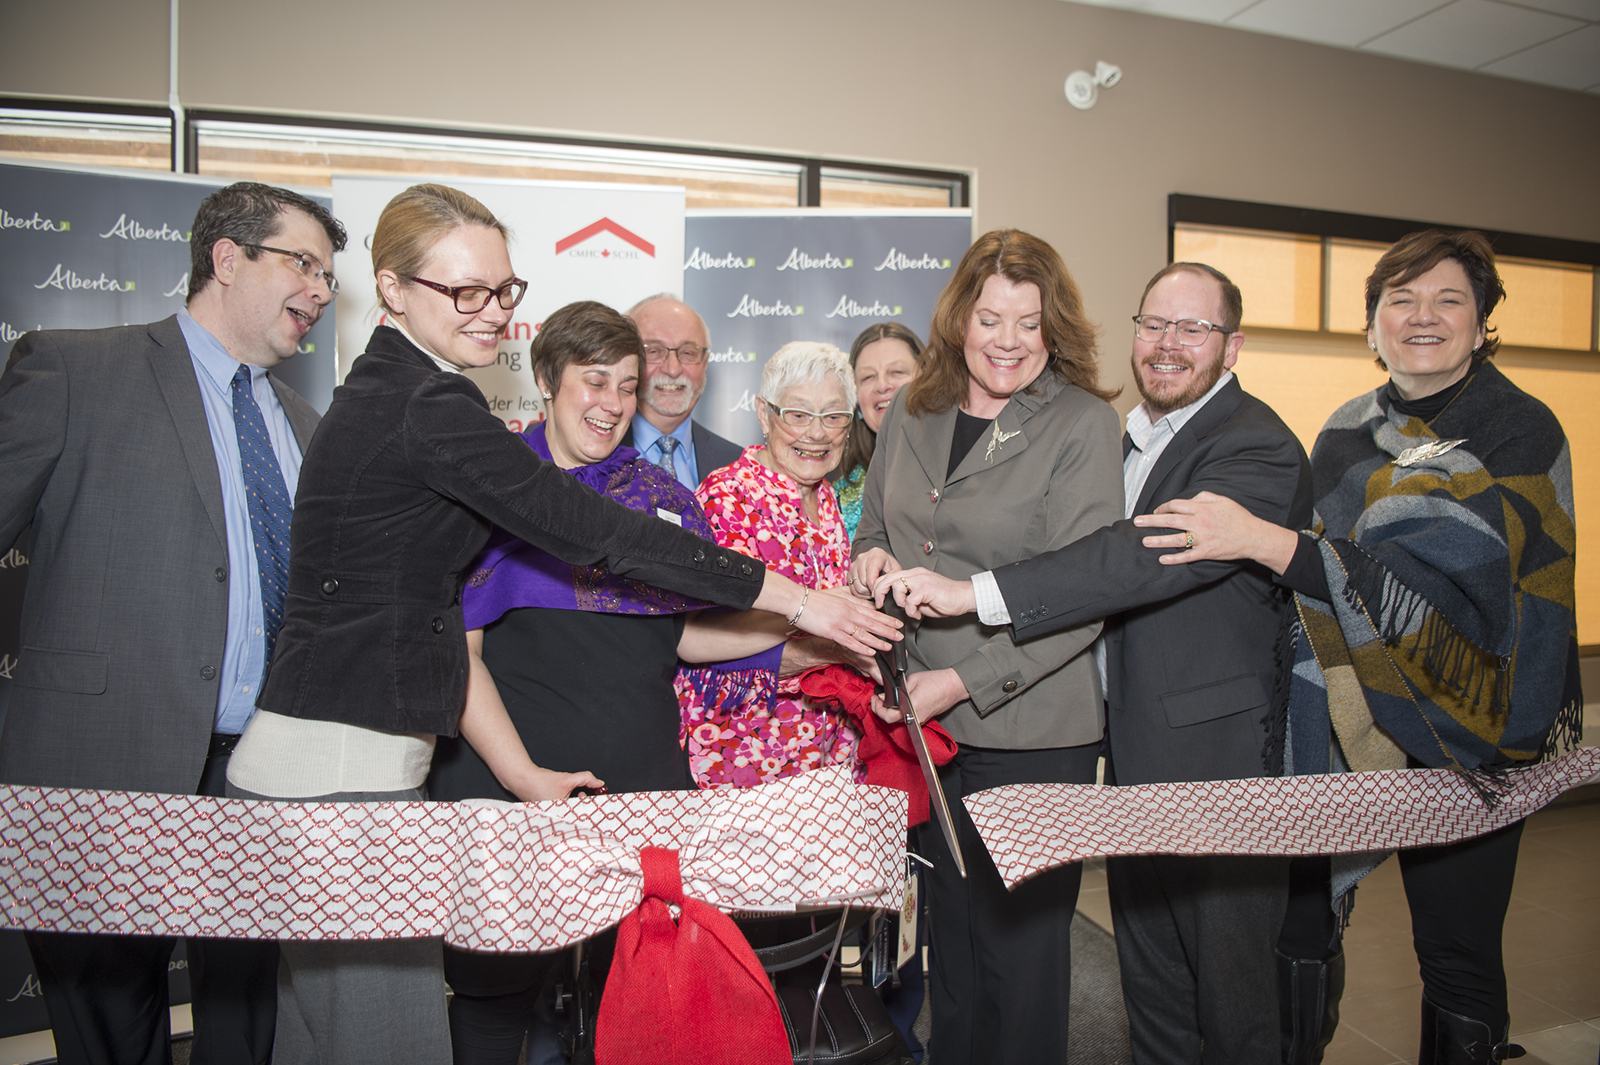 Ribbon cutting BVLodgePhase1_pamdoyle c.jpg